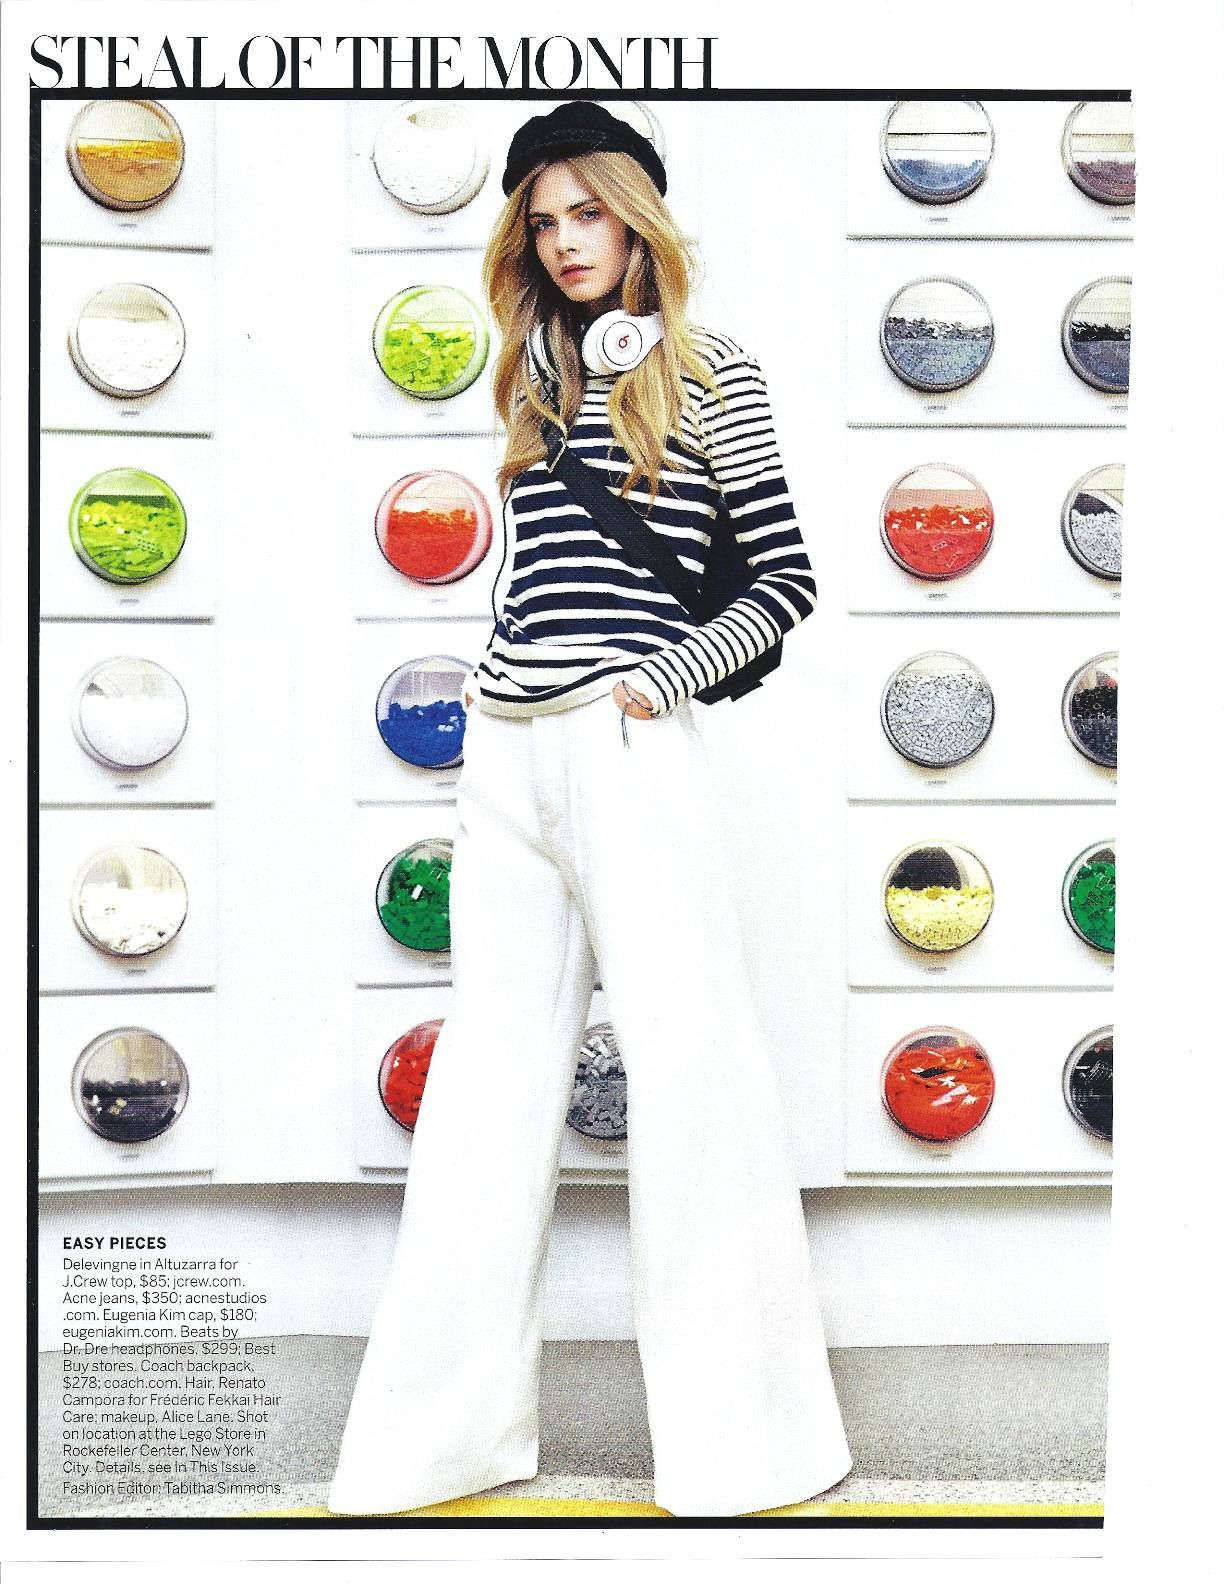 The EK Marina featured in Vogue's Steal of the Month for May!